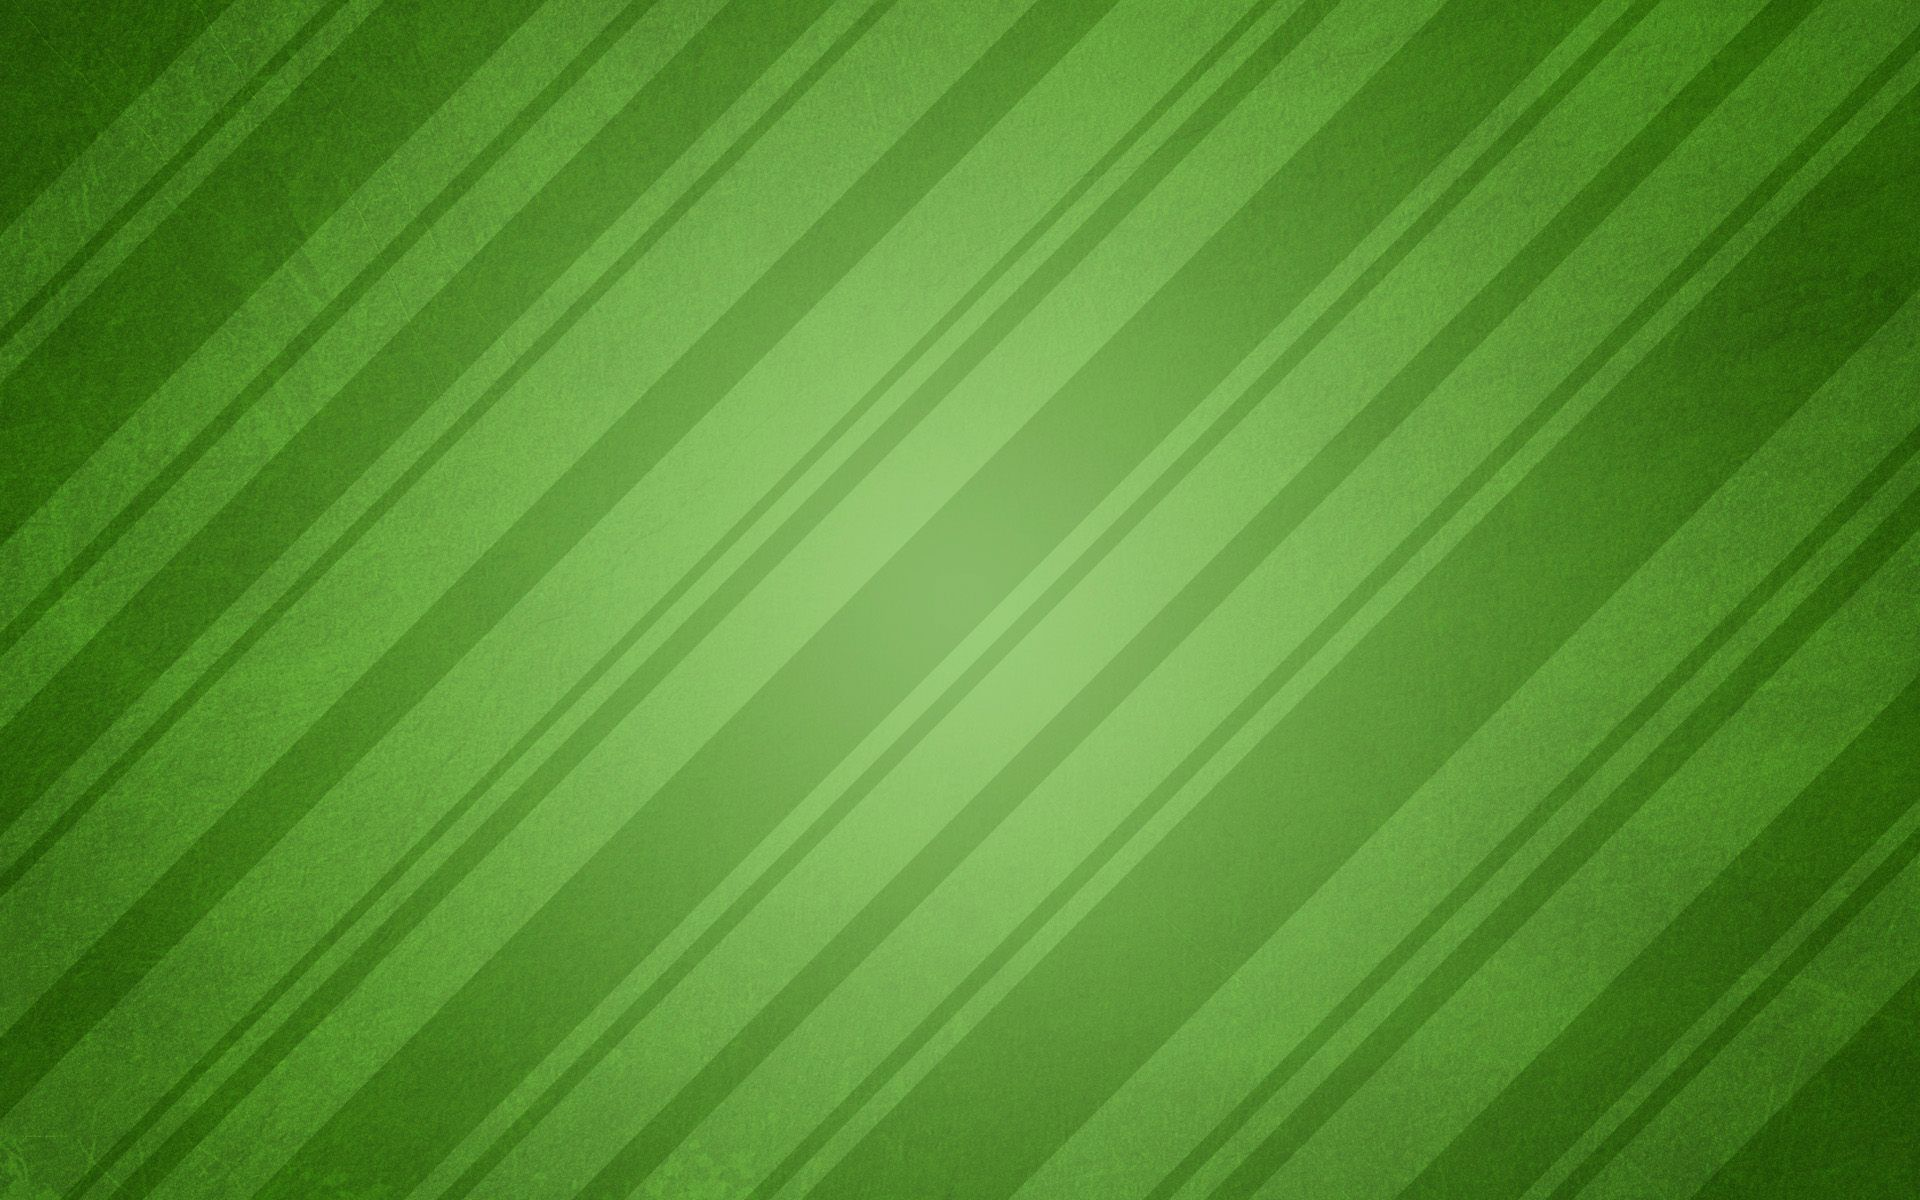 1920x1200 Wrapping Paper Green - HD Wallpapers